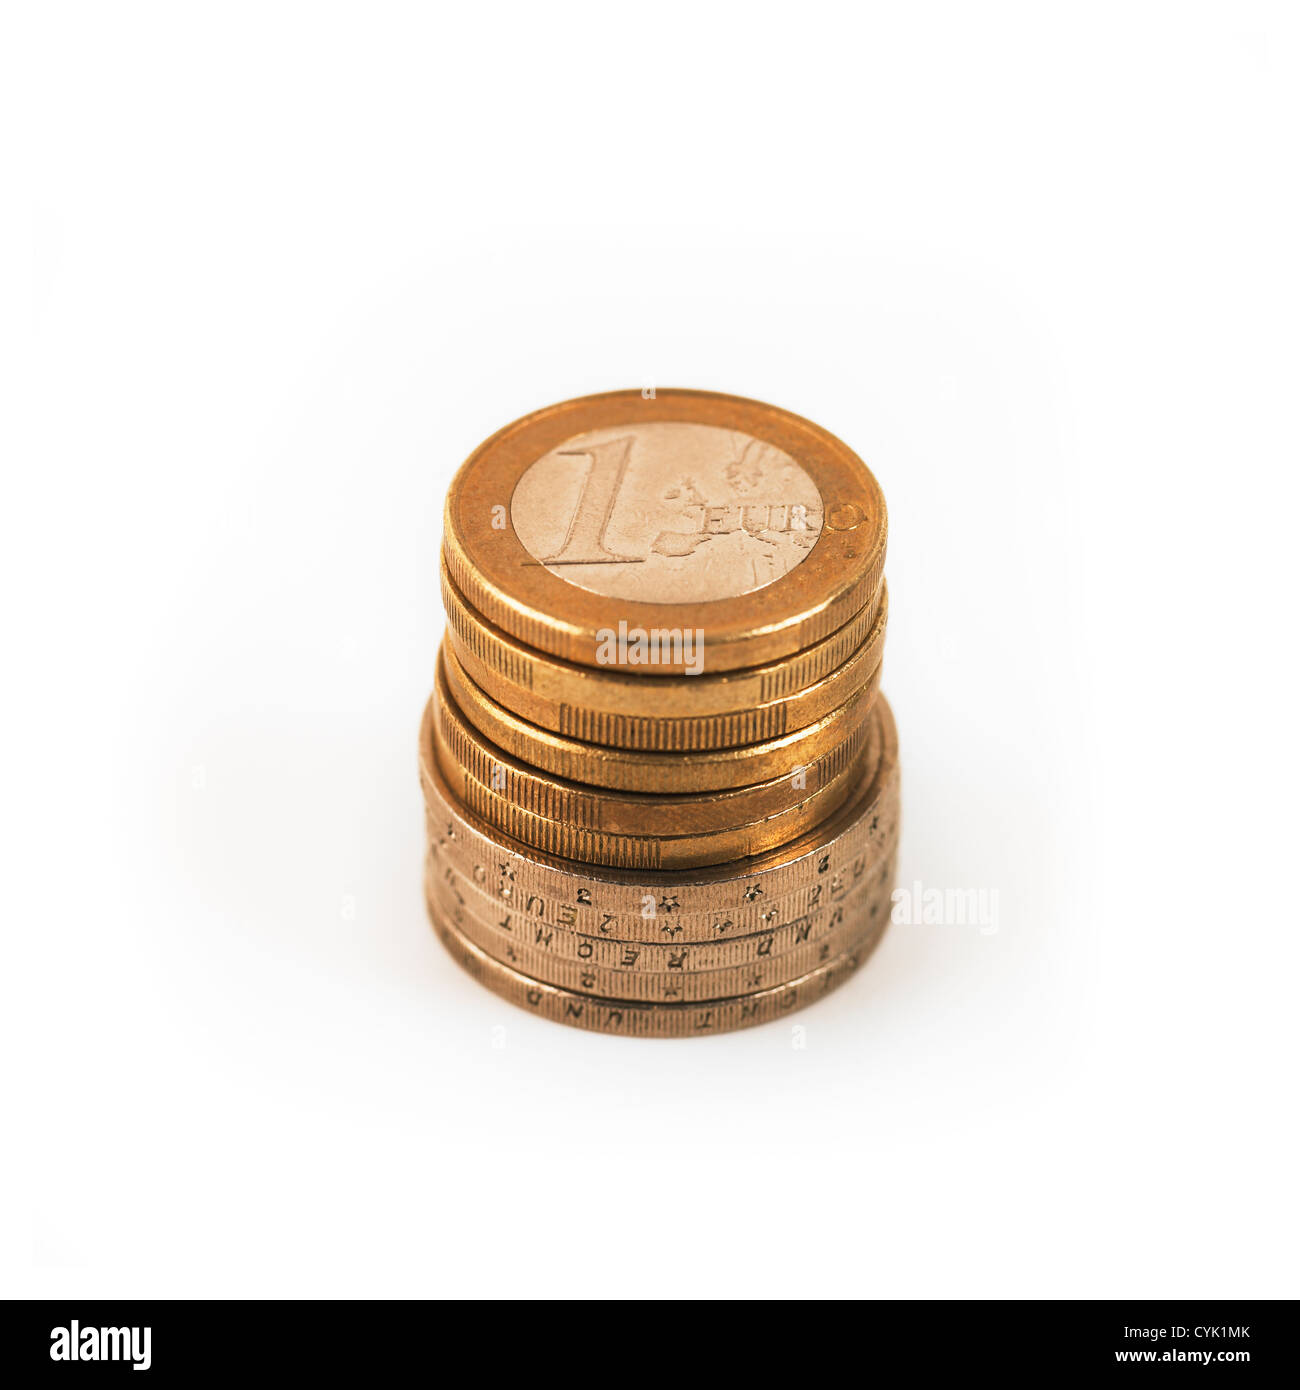 Stack of 1 Euro and 2 Euro coins - Stock Image